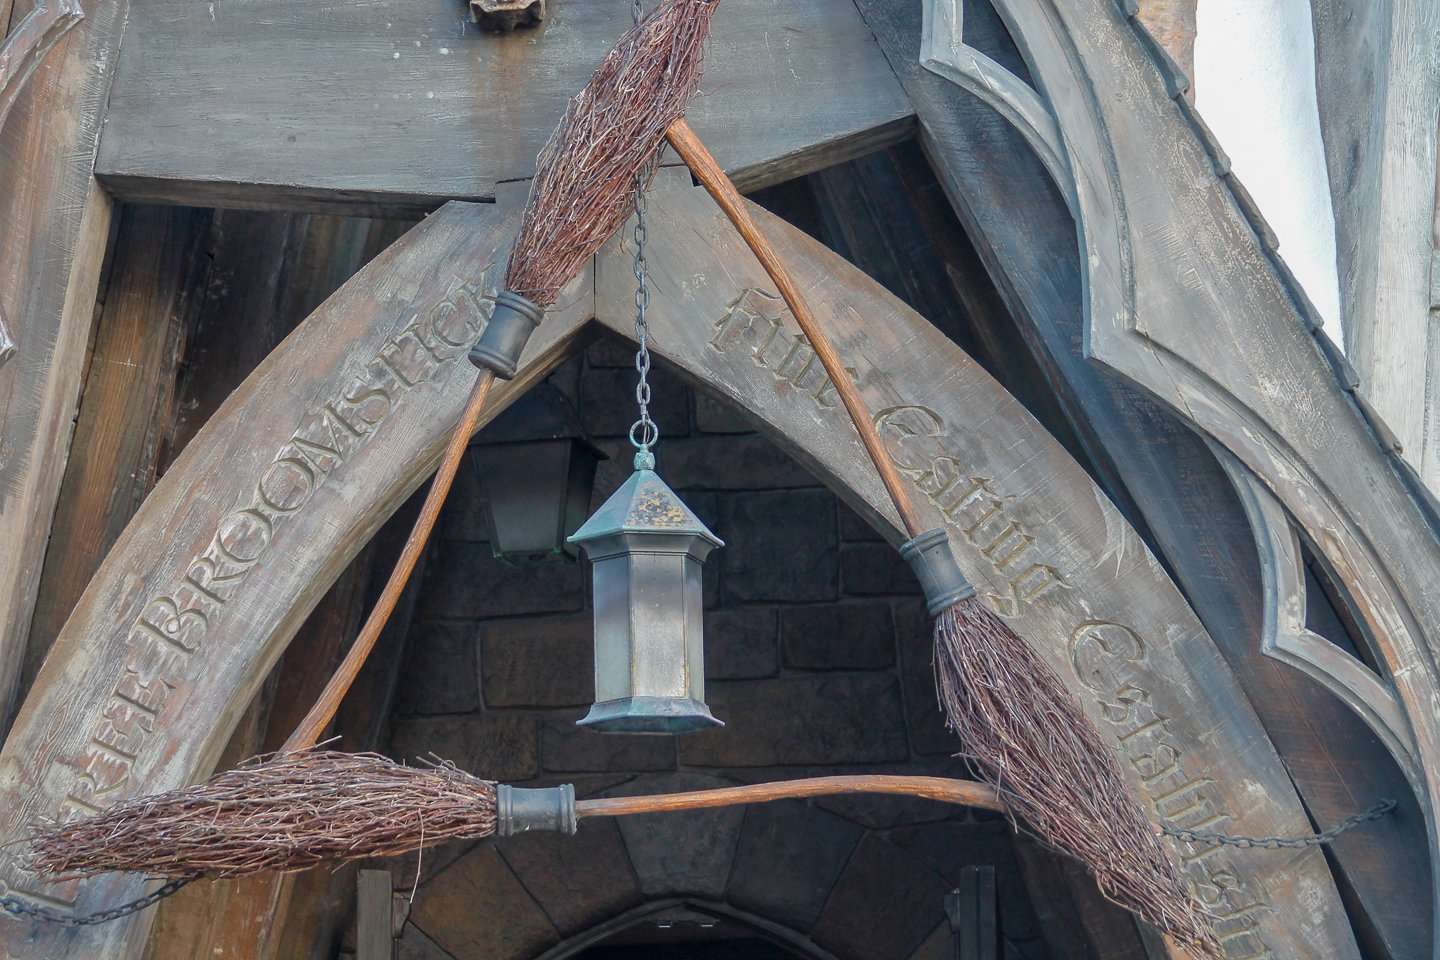 Three Broomsticks Wizarding World of Harry Potter